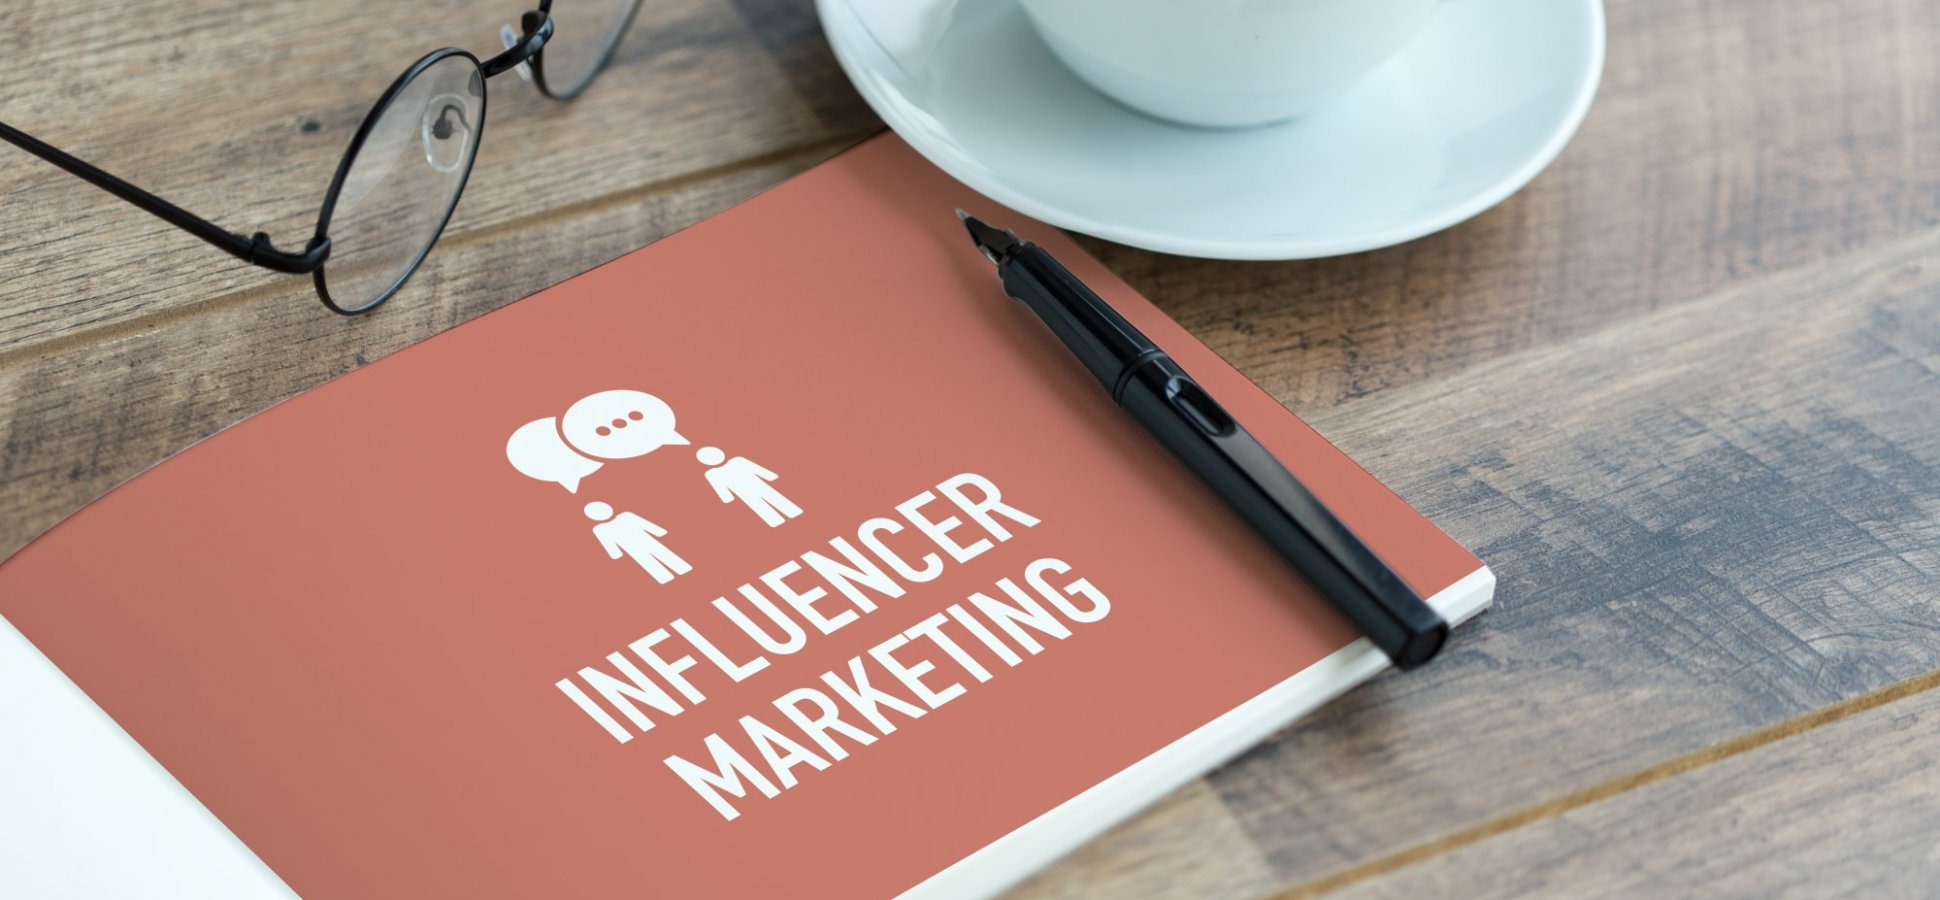 Why Influencer Marketing is the Focus of this New Advertising-Based Company